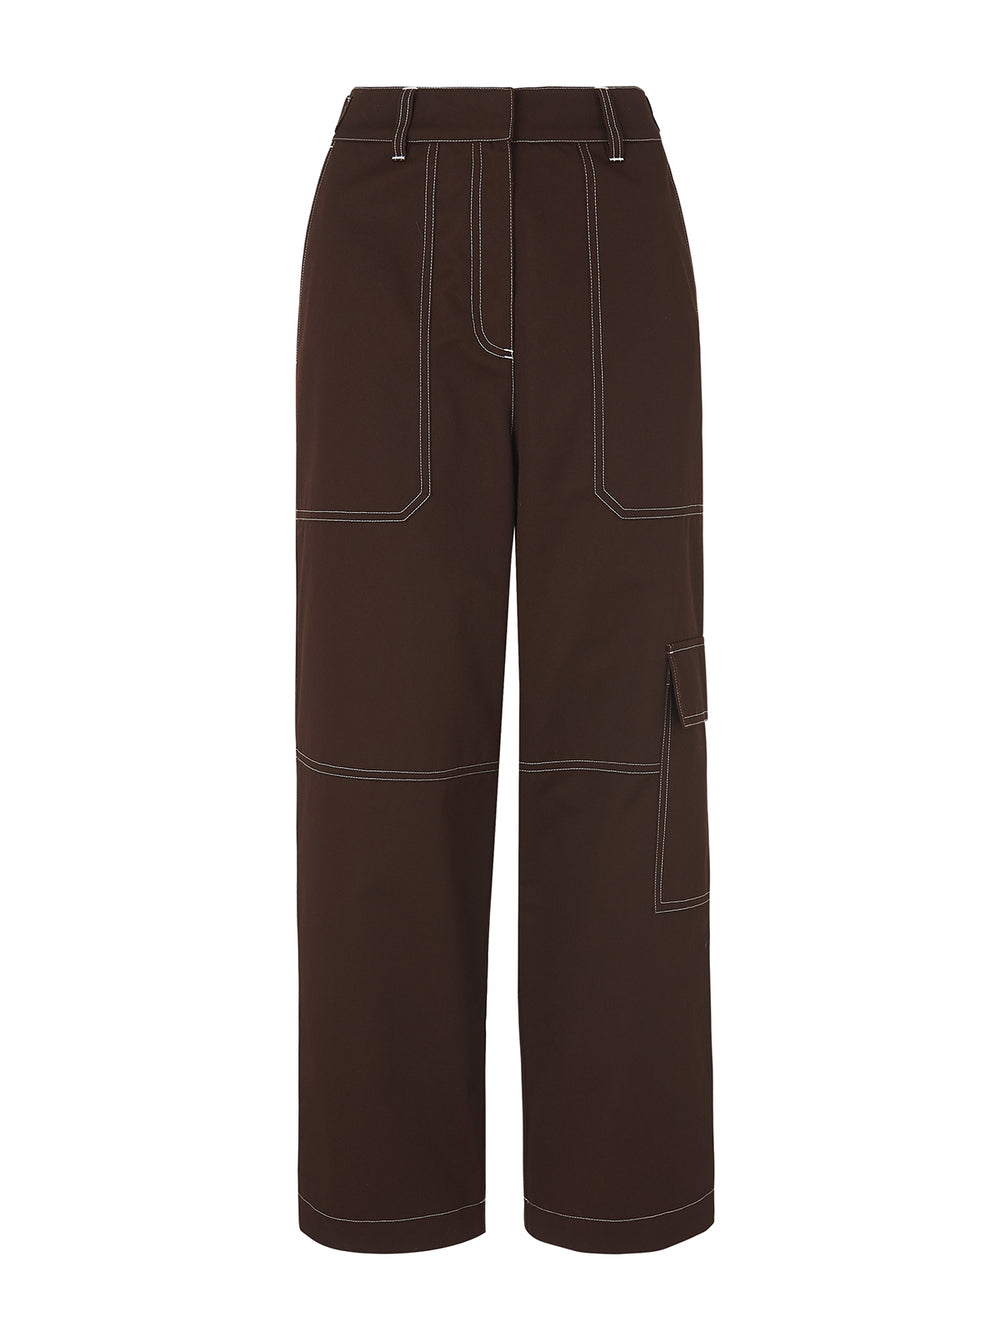 Denise Chocolate Utility Trousers by KITRI Studio